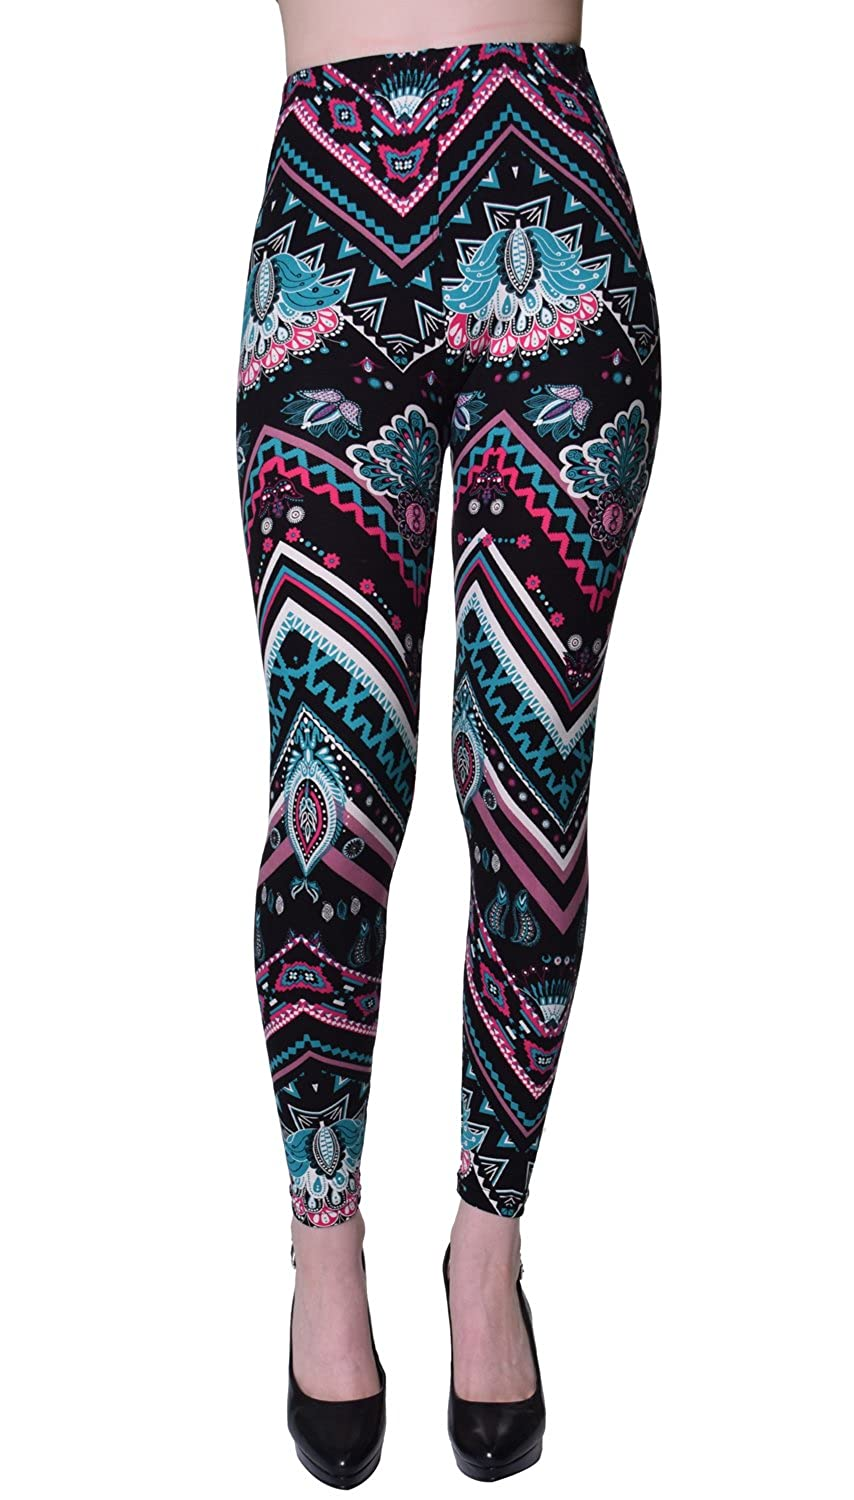 e48ccb71cf7ac VIV Collection Popular Printed Brushed Buttery Soft Leggings Regular Plus  40+ Designs List 1 at Amazon Women s Clothing store